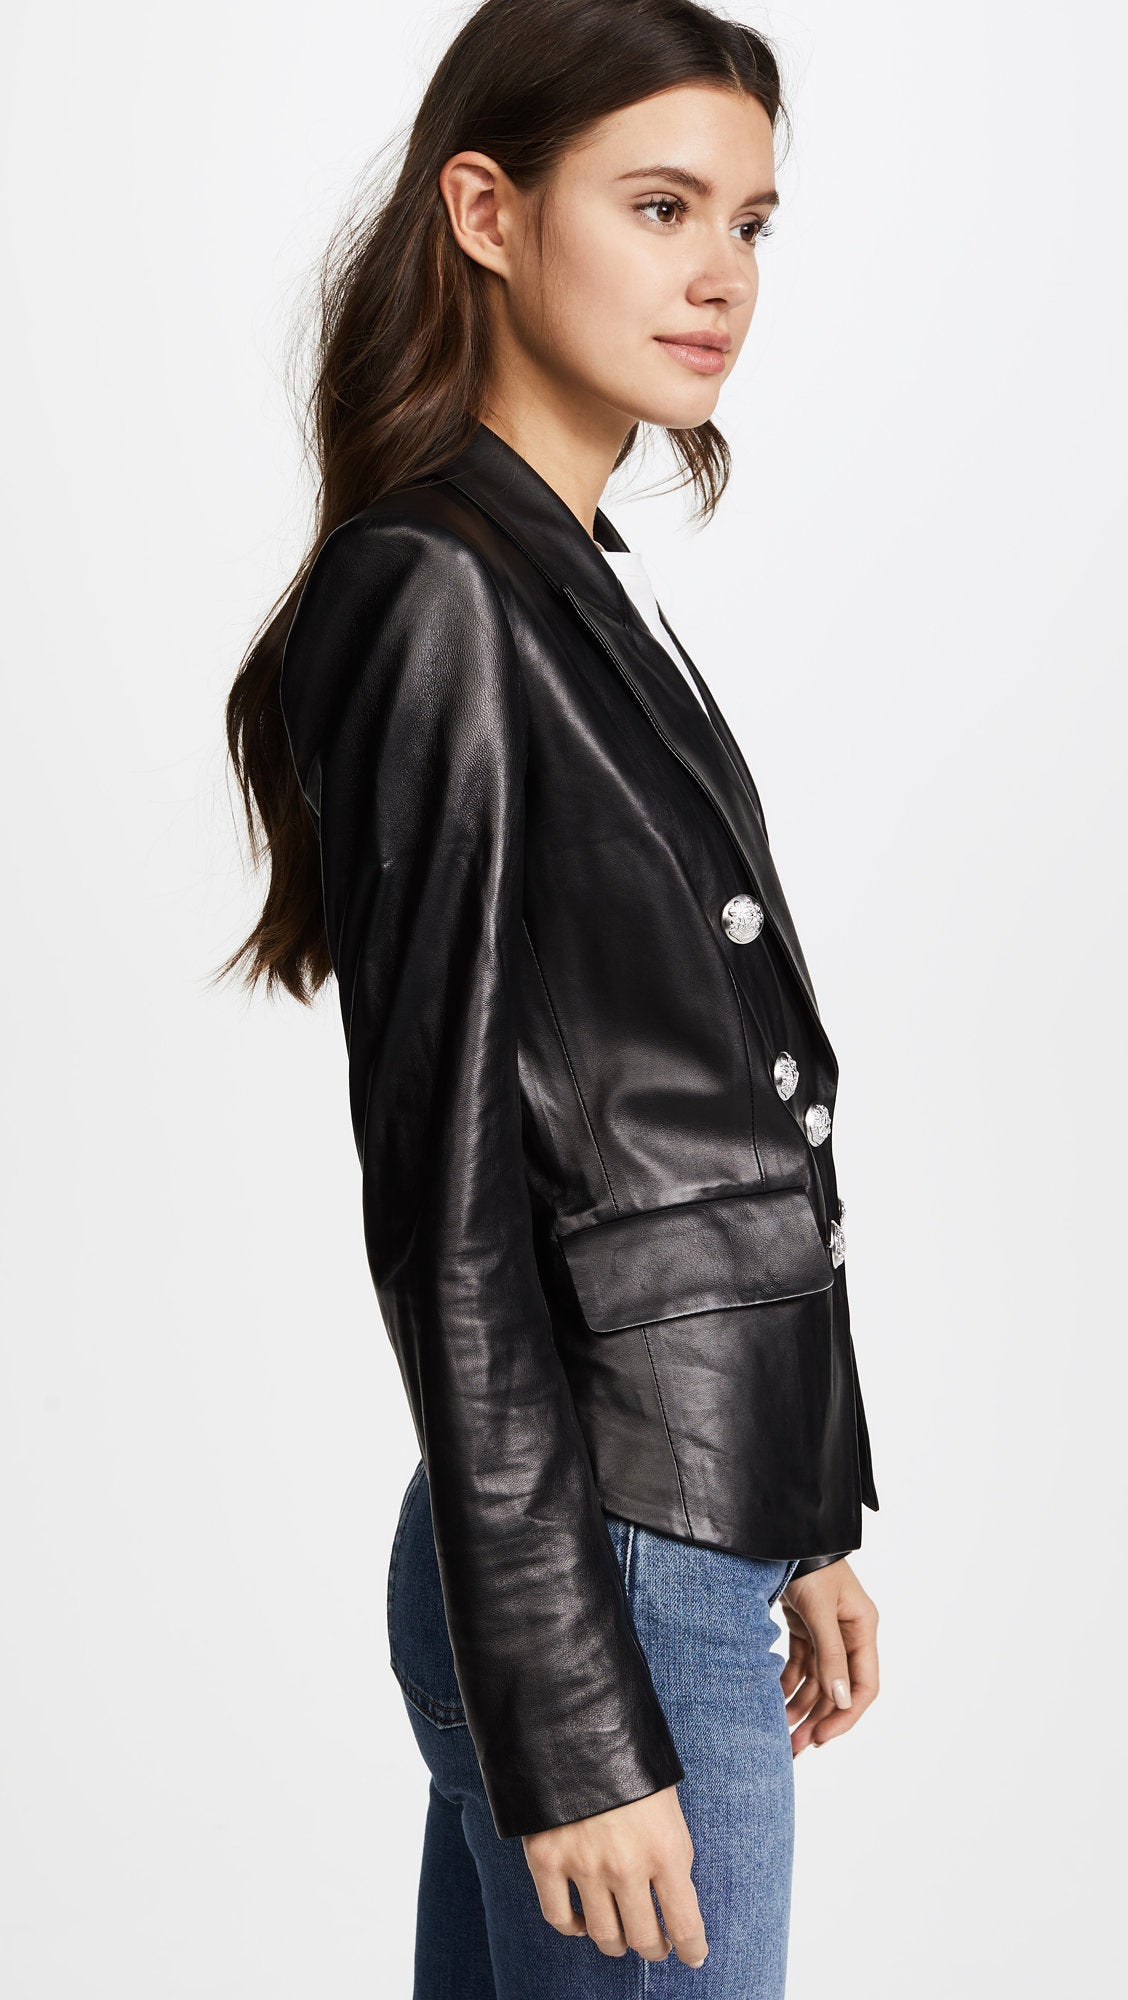 Designer genuine leather Handmade women Classic Black Leather Blazer: Guaranteed delivery within 4 working  days after dispatch